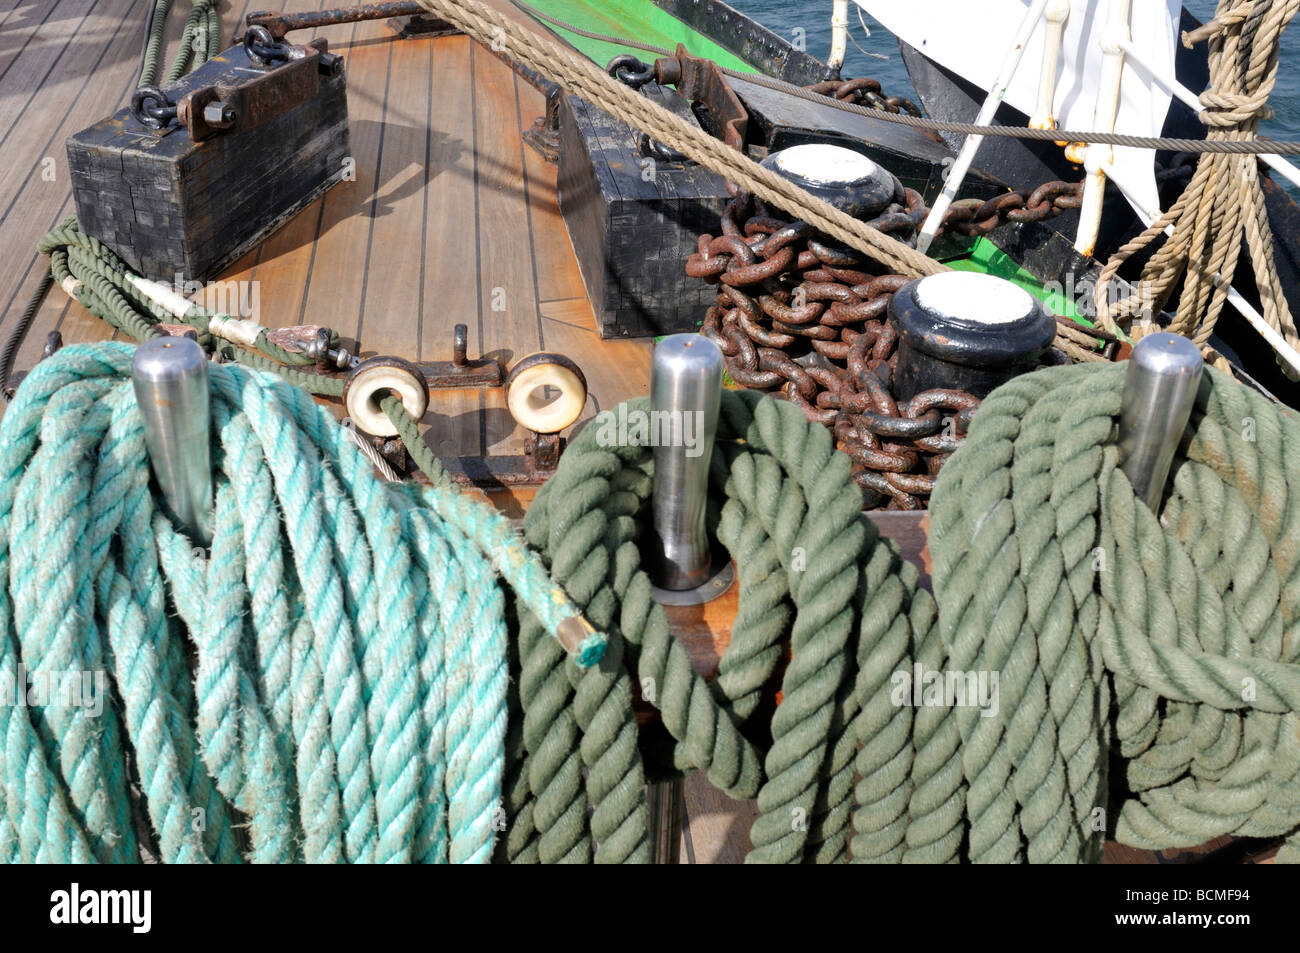 Rope coiled on bitts on deck of  a large sailing vessel tall ship - Stock Image